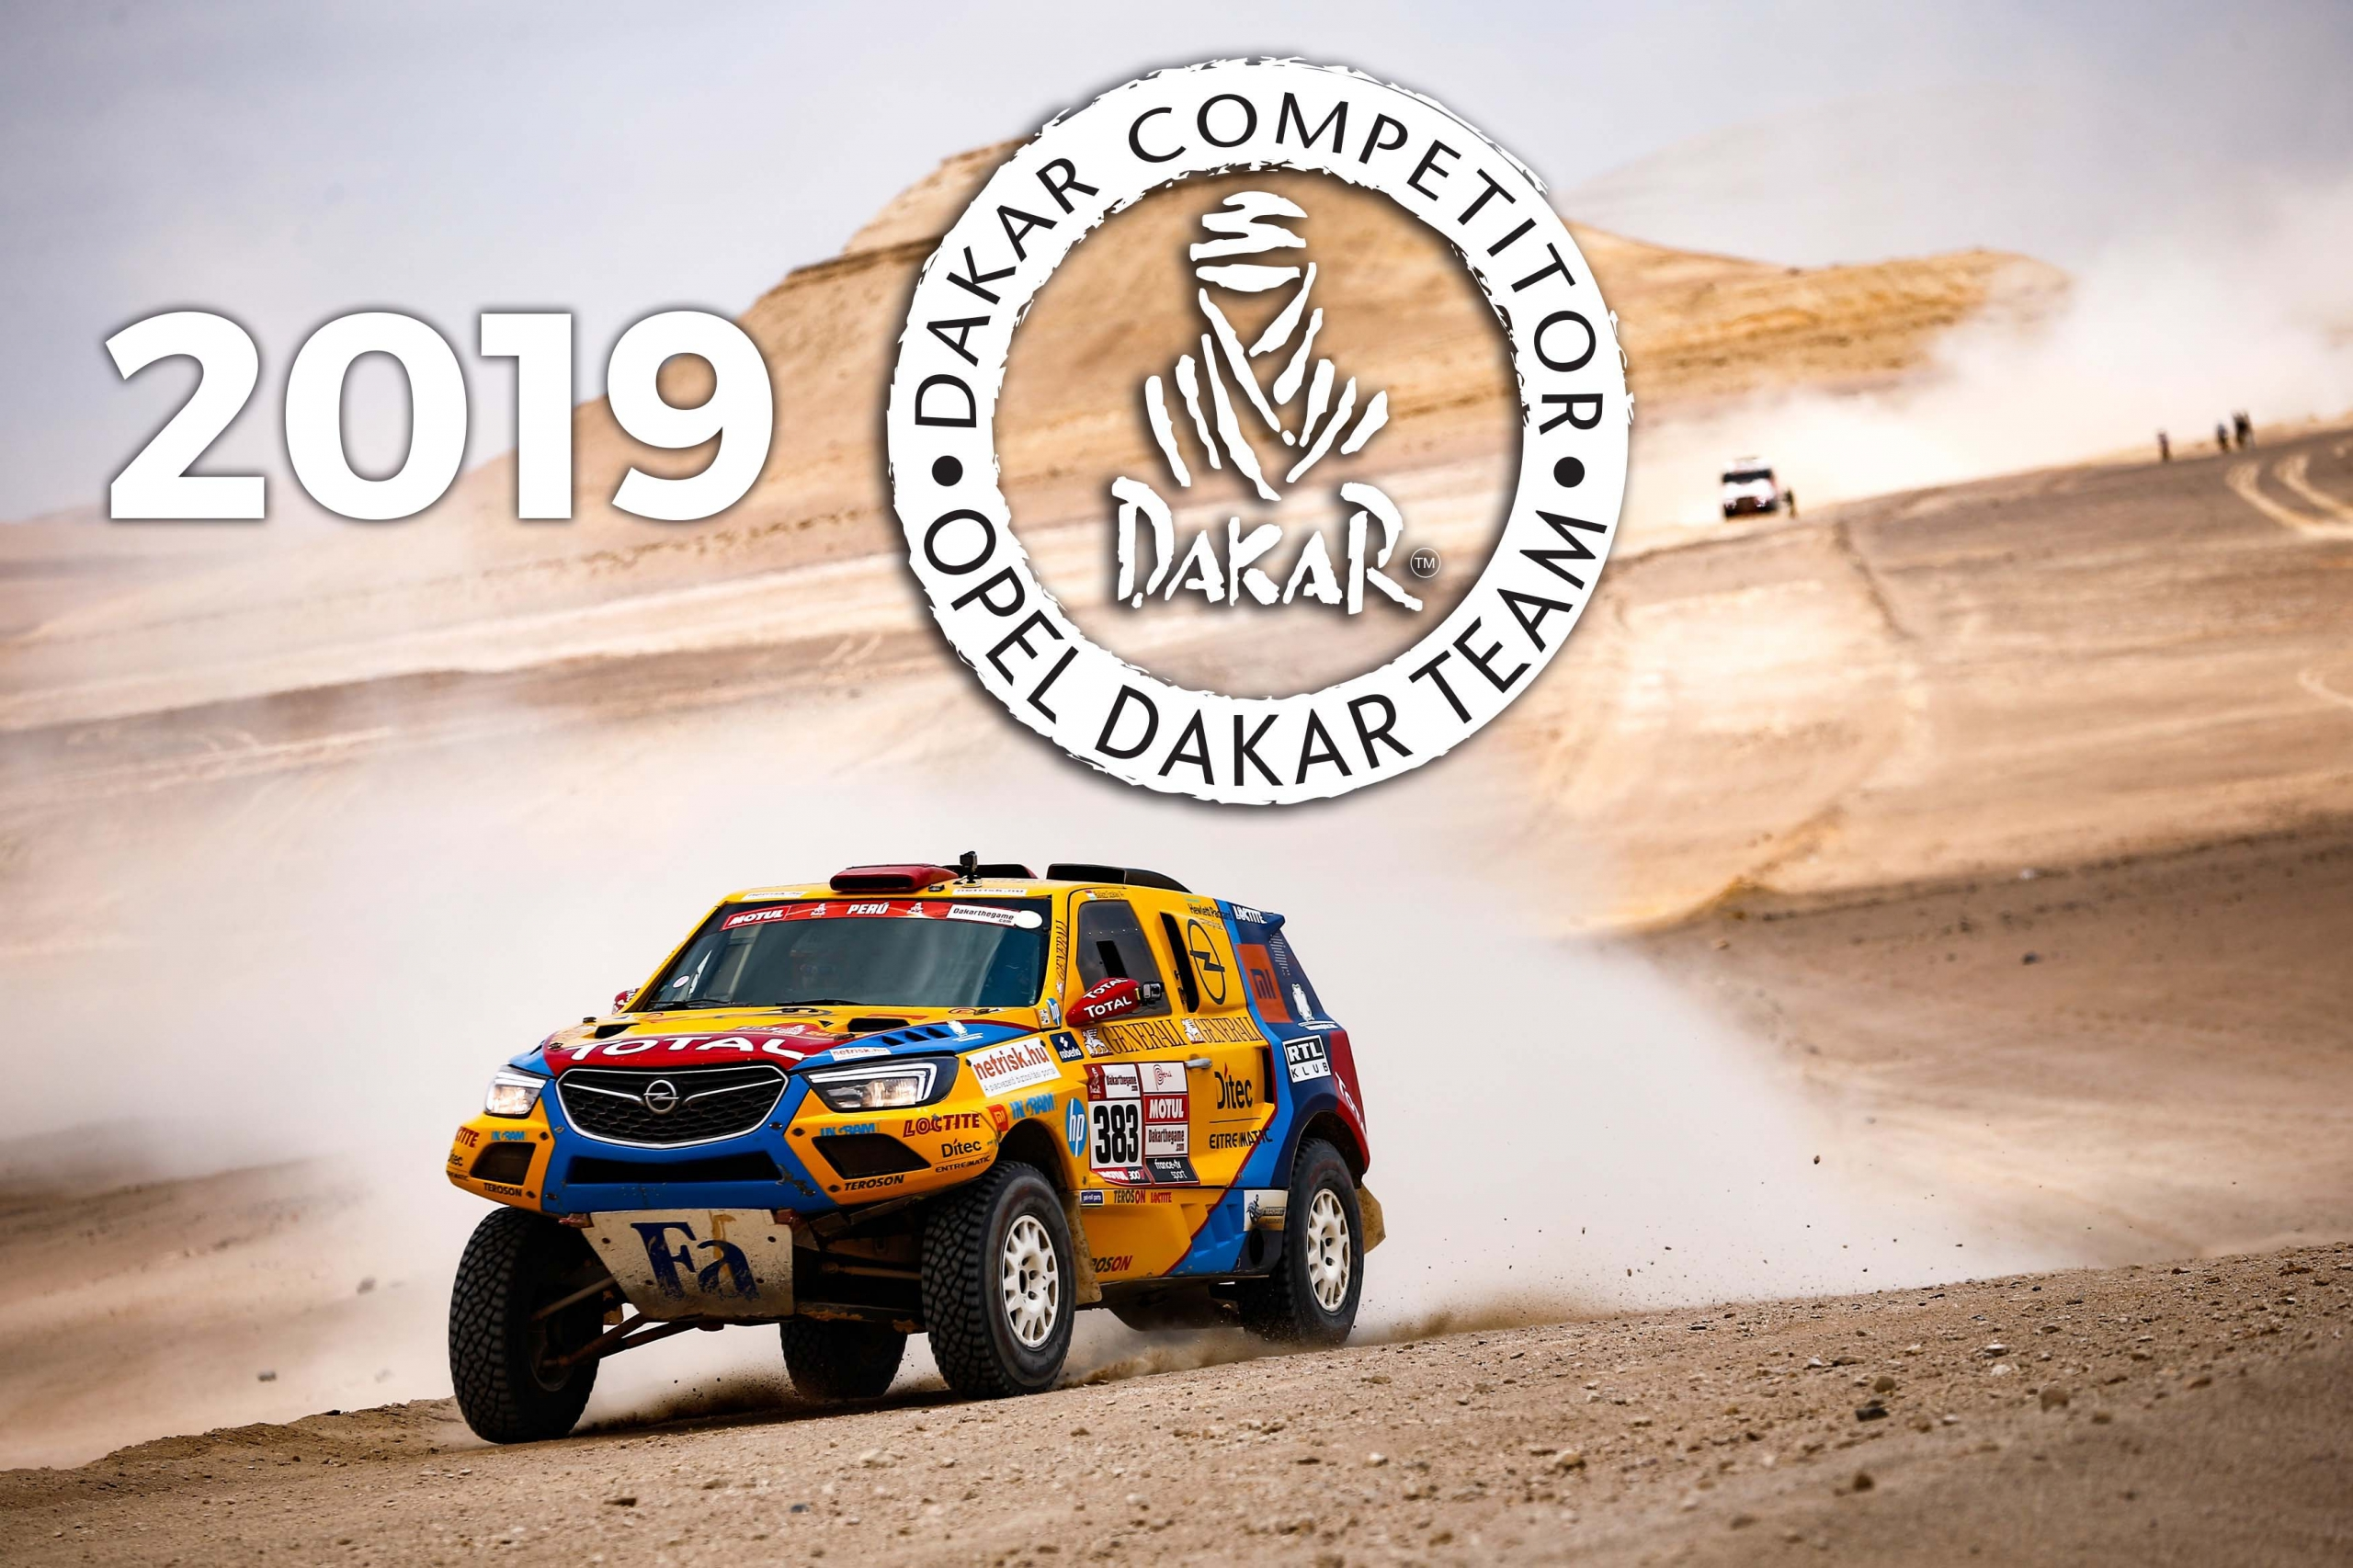 Opel Dakar Team 2019